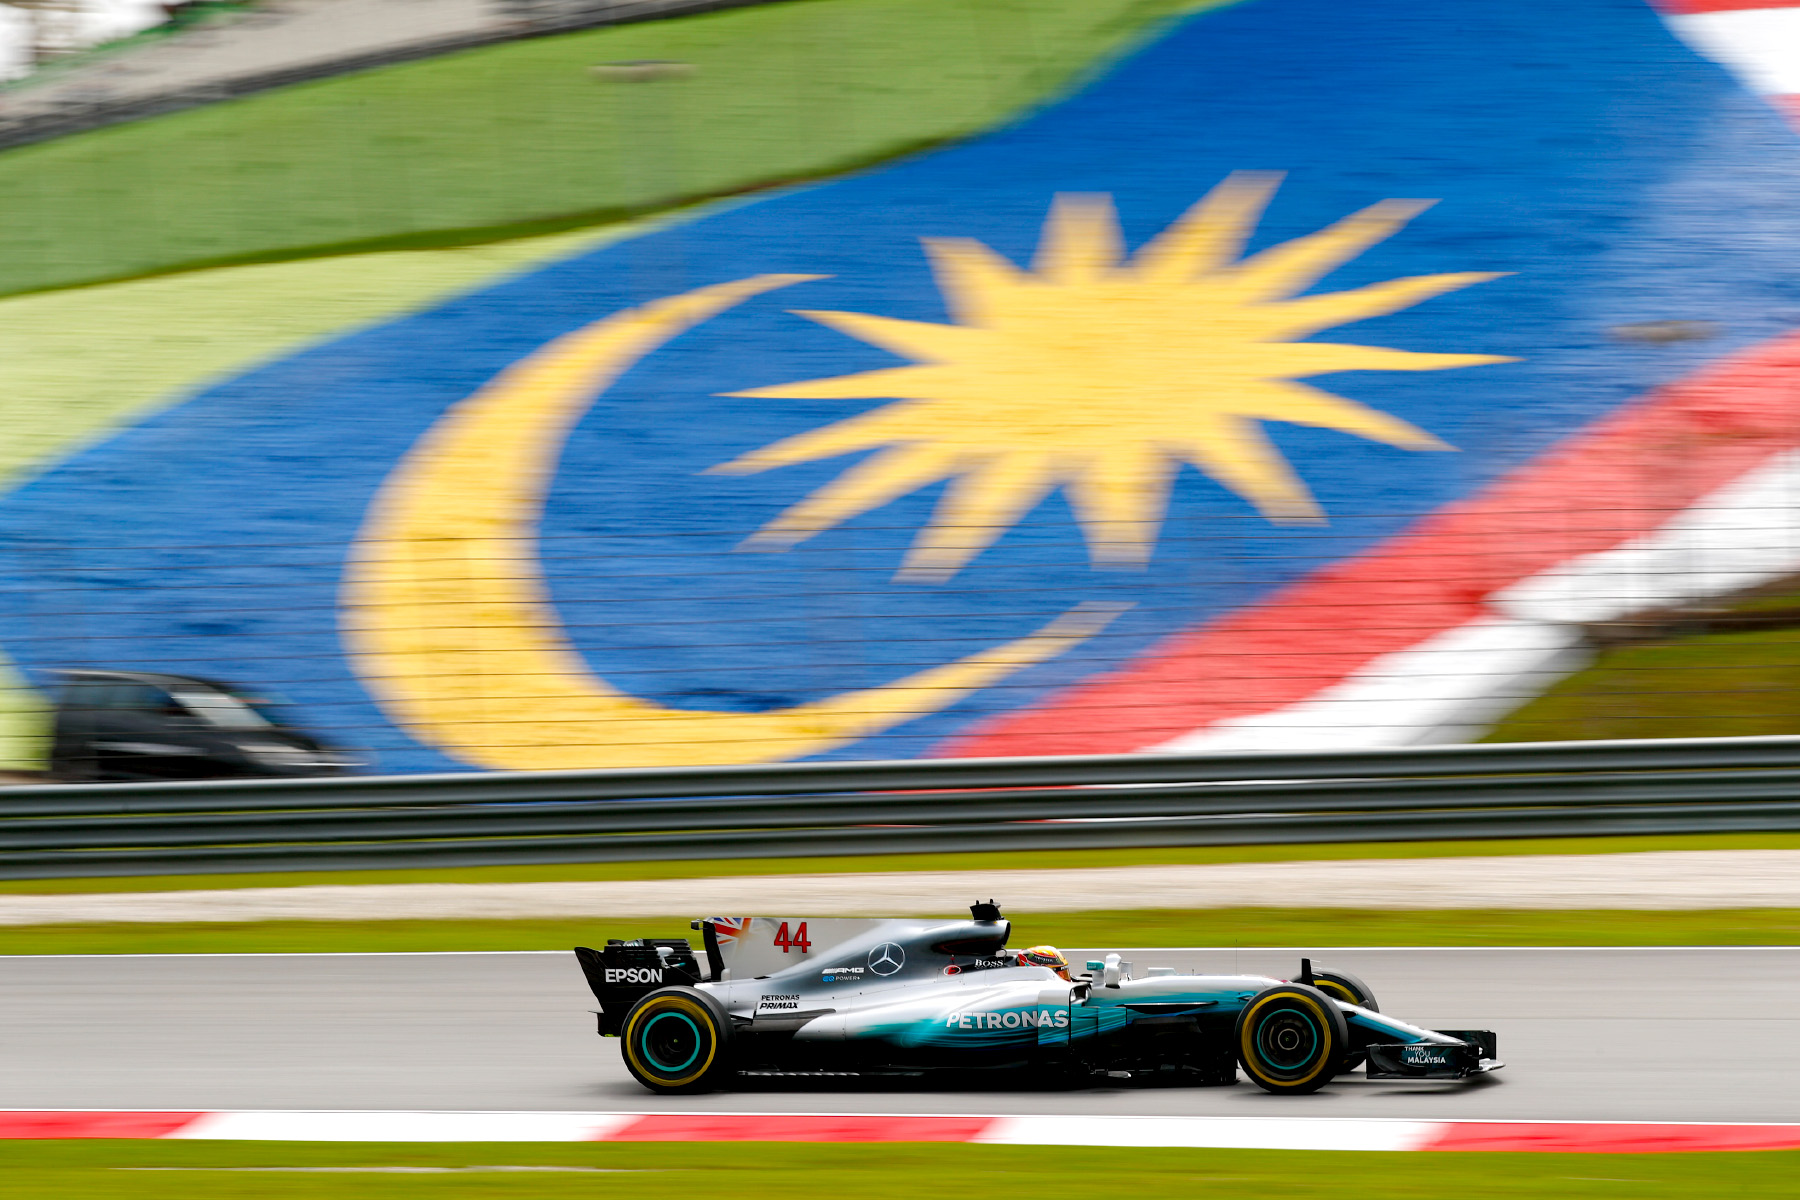 Lewis Hamilton on track at the 2017 Malaysian Grand Prix.